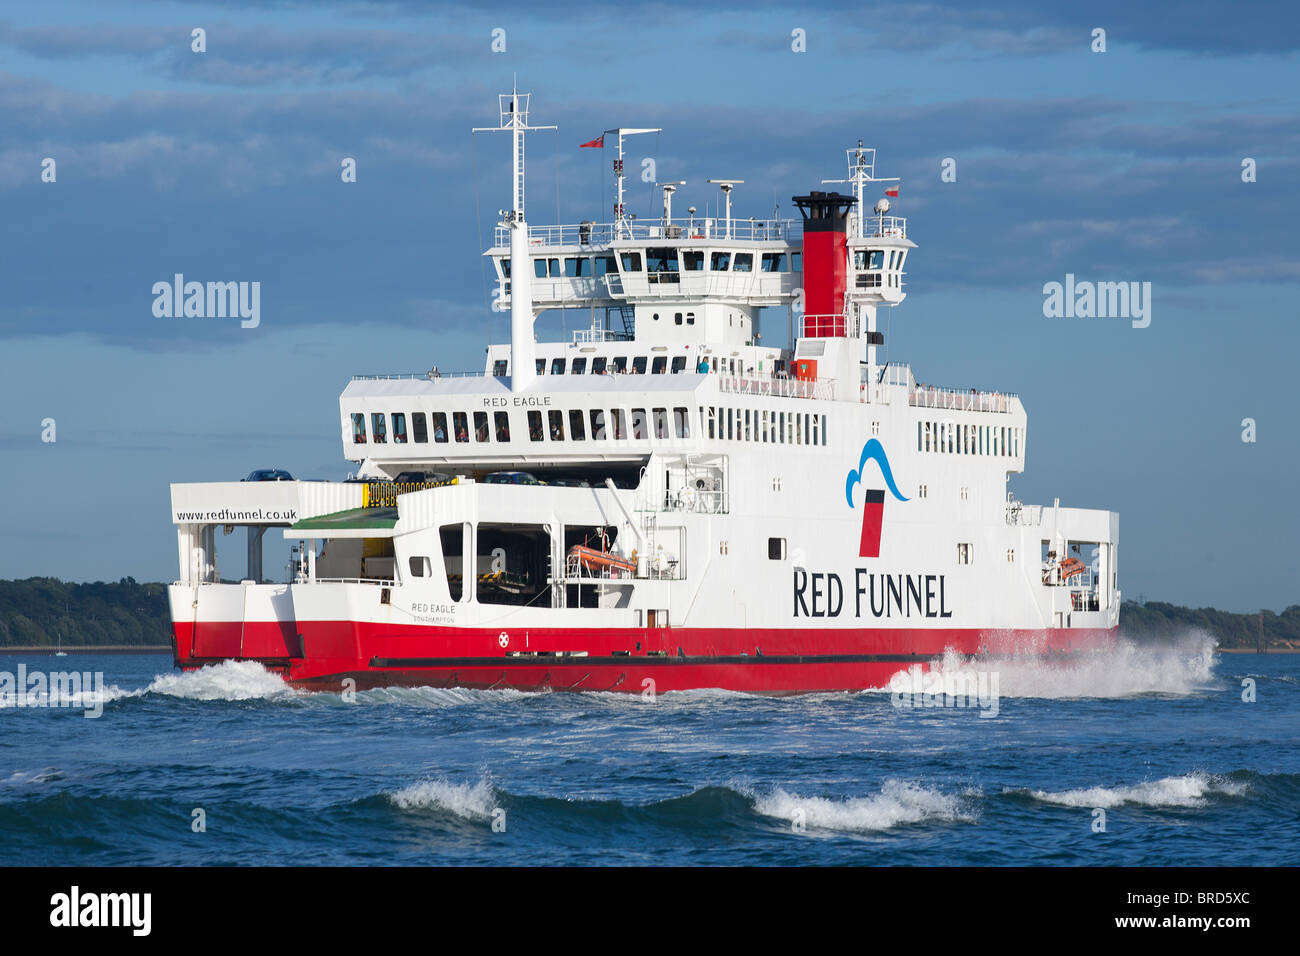 Isle of Wight Cowes Ferry Red Funnel - Stock Image